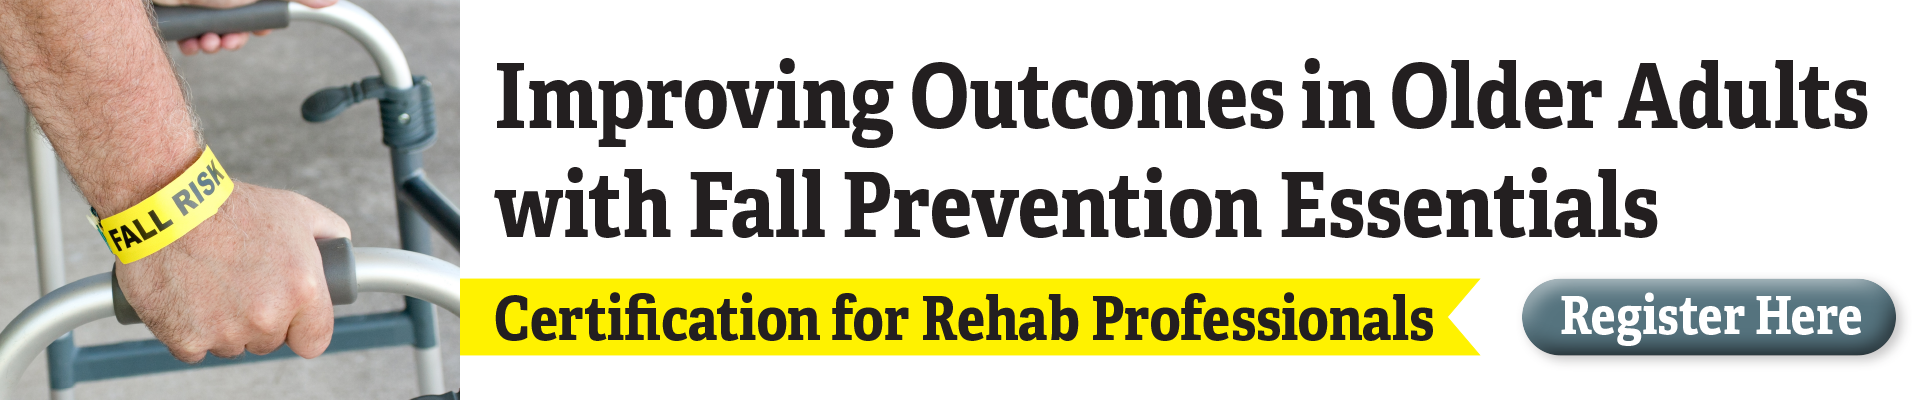 Improving Outcomes in Older Adults with Fall Prevention Essentials: Certification for Rehab Professionals